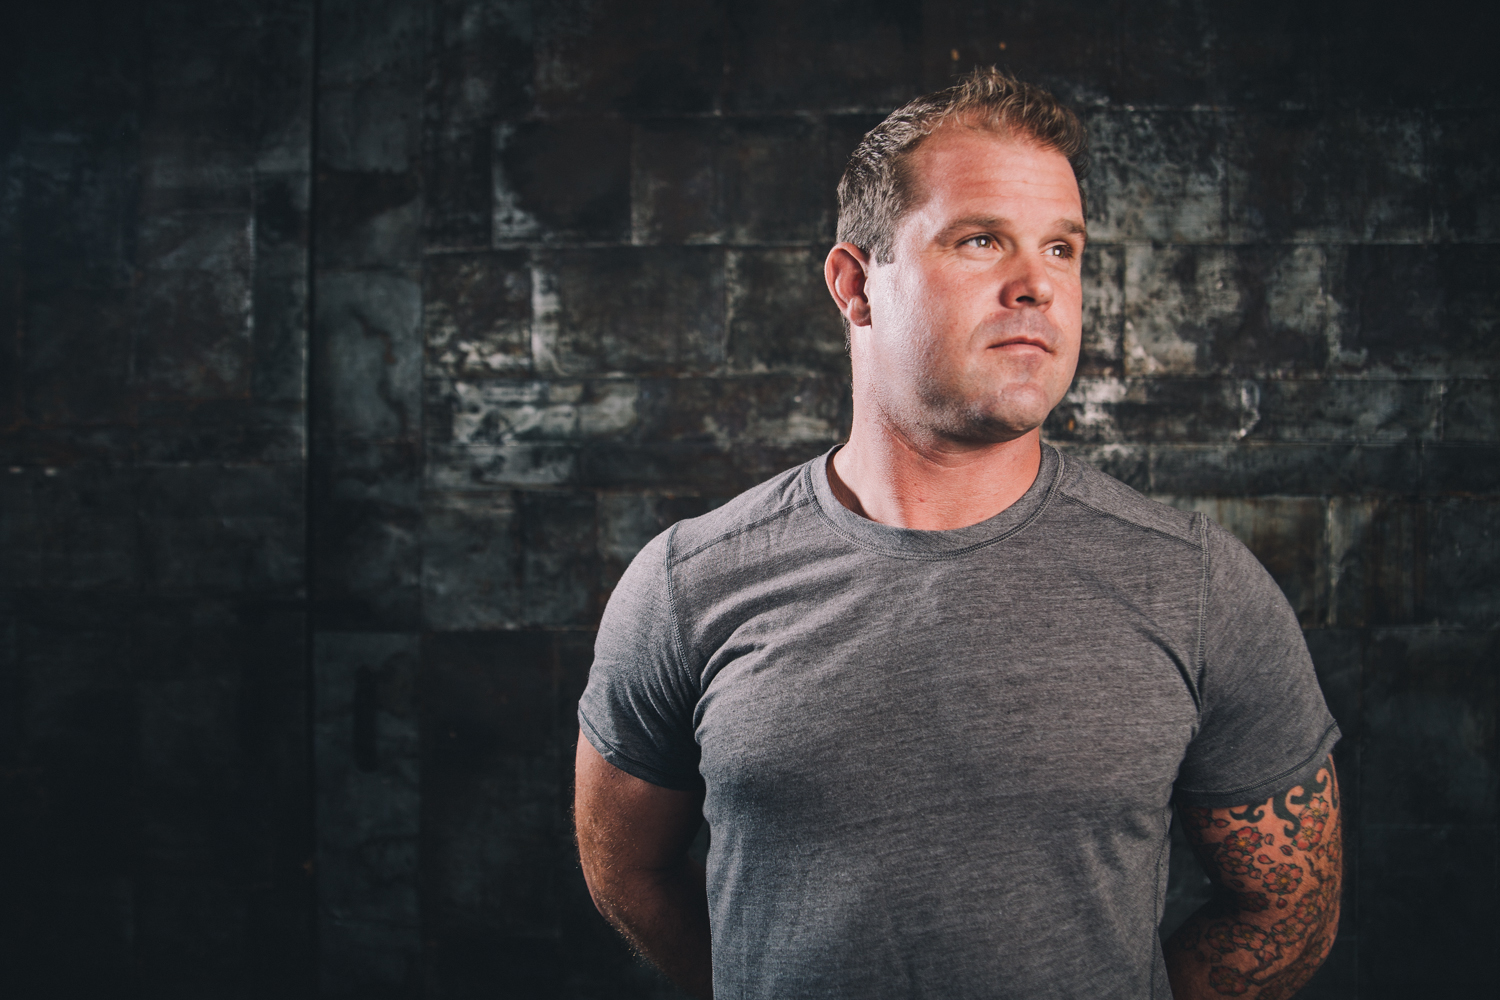 Meeting and photographing Kelly Starrett.